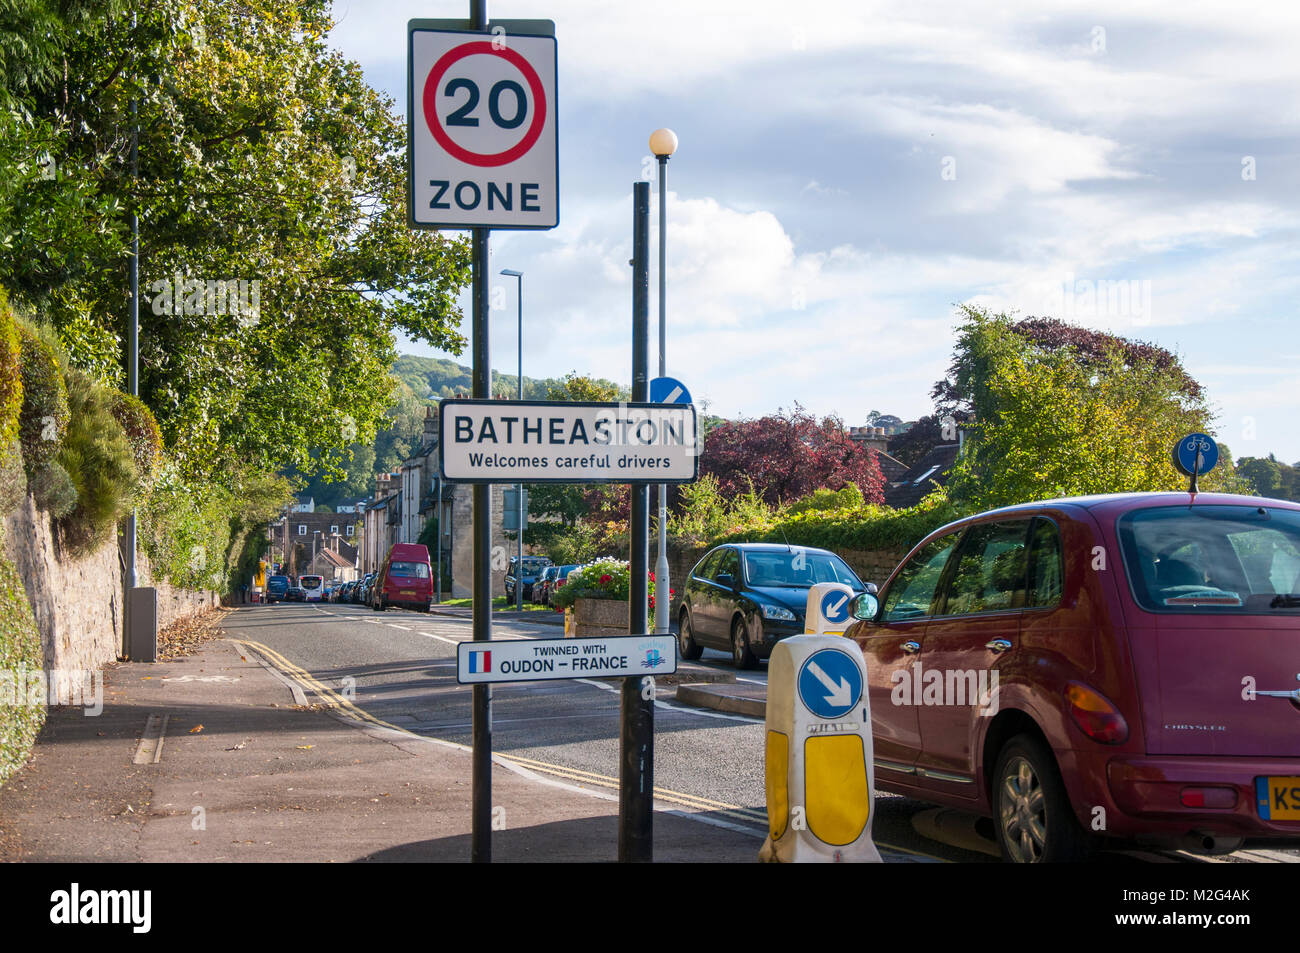 Road into Batheaston twenty mile per hour zone with traffic calming chicane, Somerset, England - Stock Image